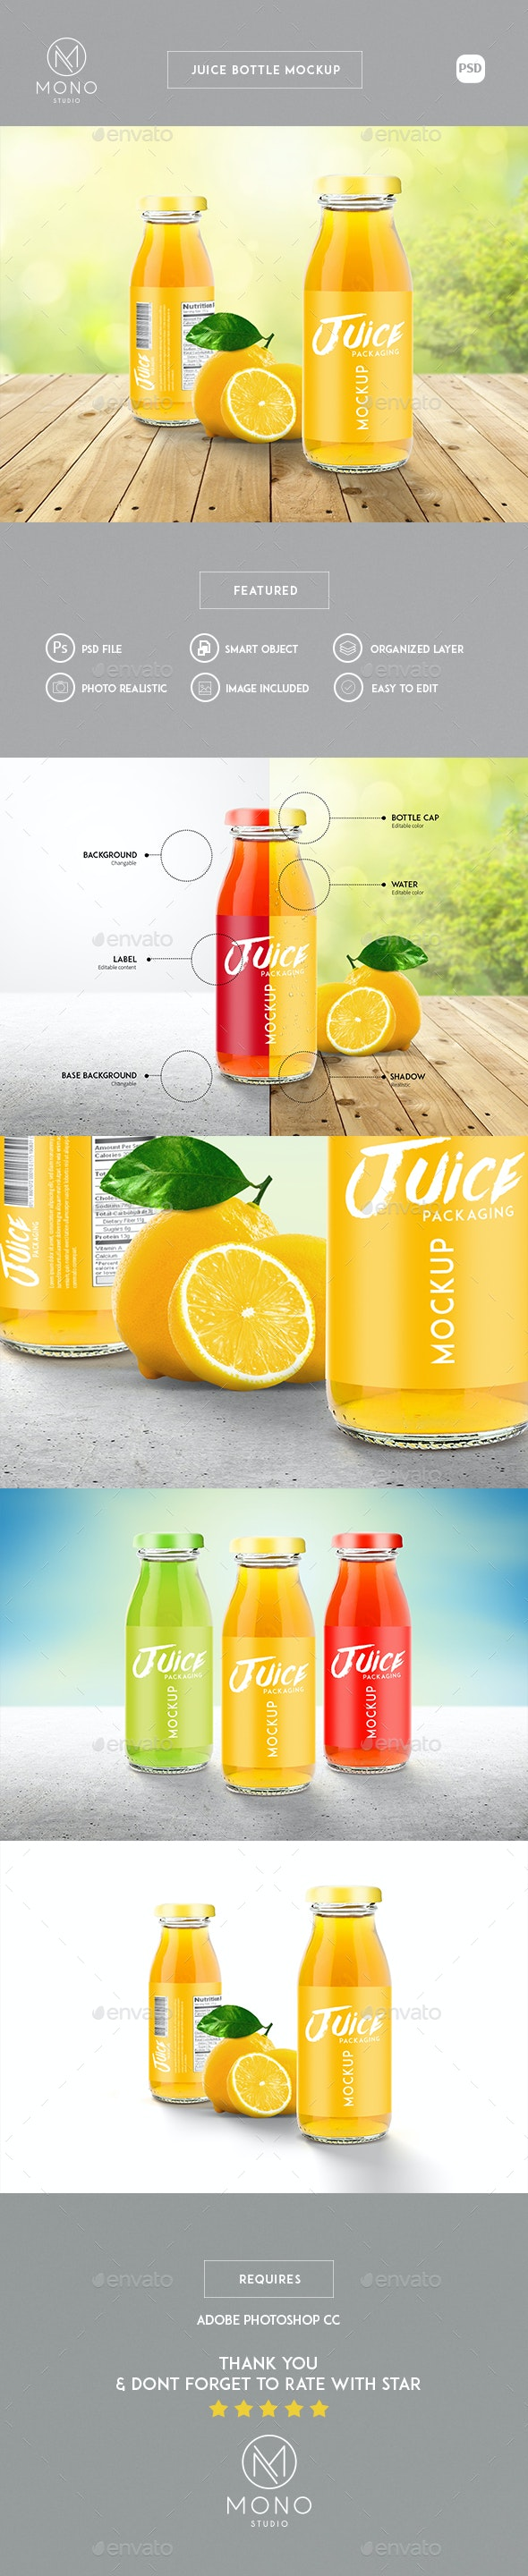 Juice Bottle Mockup - Product Mock-Ups Graphics